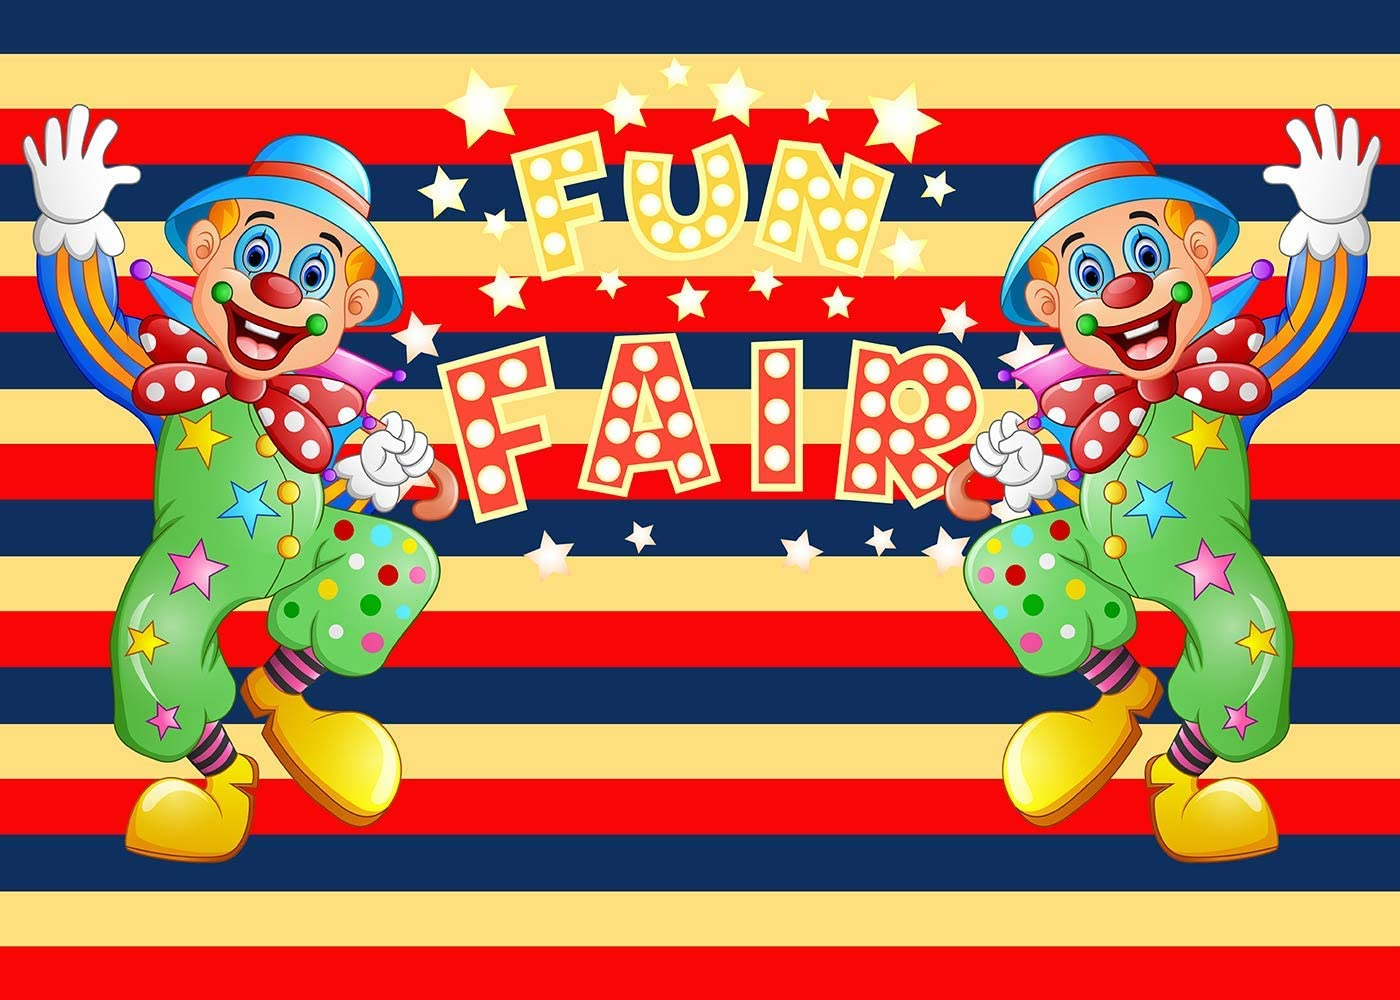 10x8ft Clown Backdrop Children Birthday Photography Props Photo Background Banner Decor LYFU261